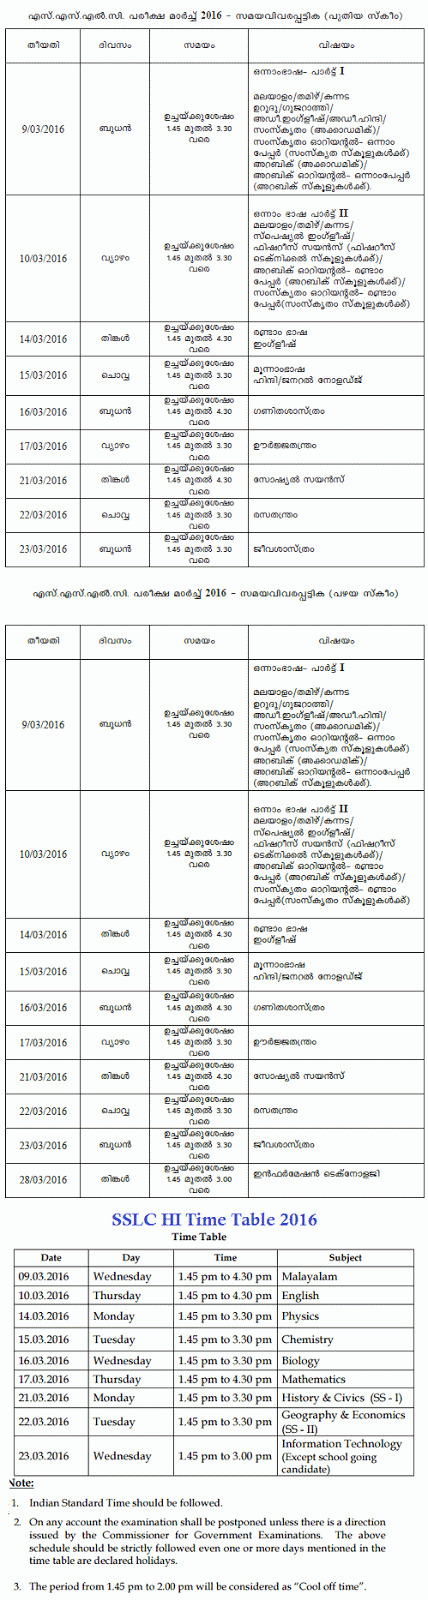 kerala sslc time table 2016